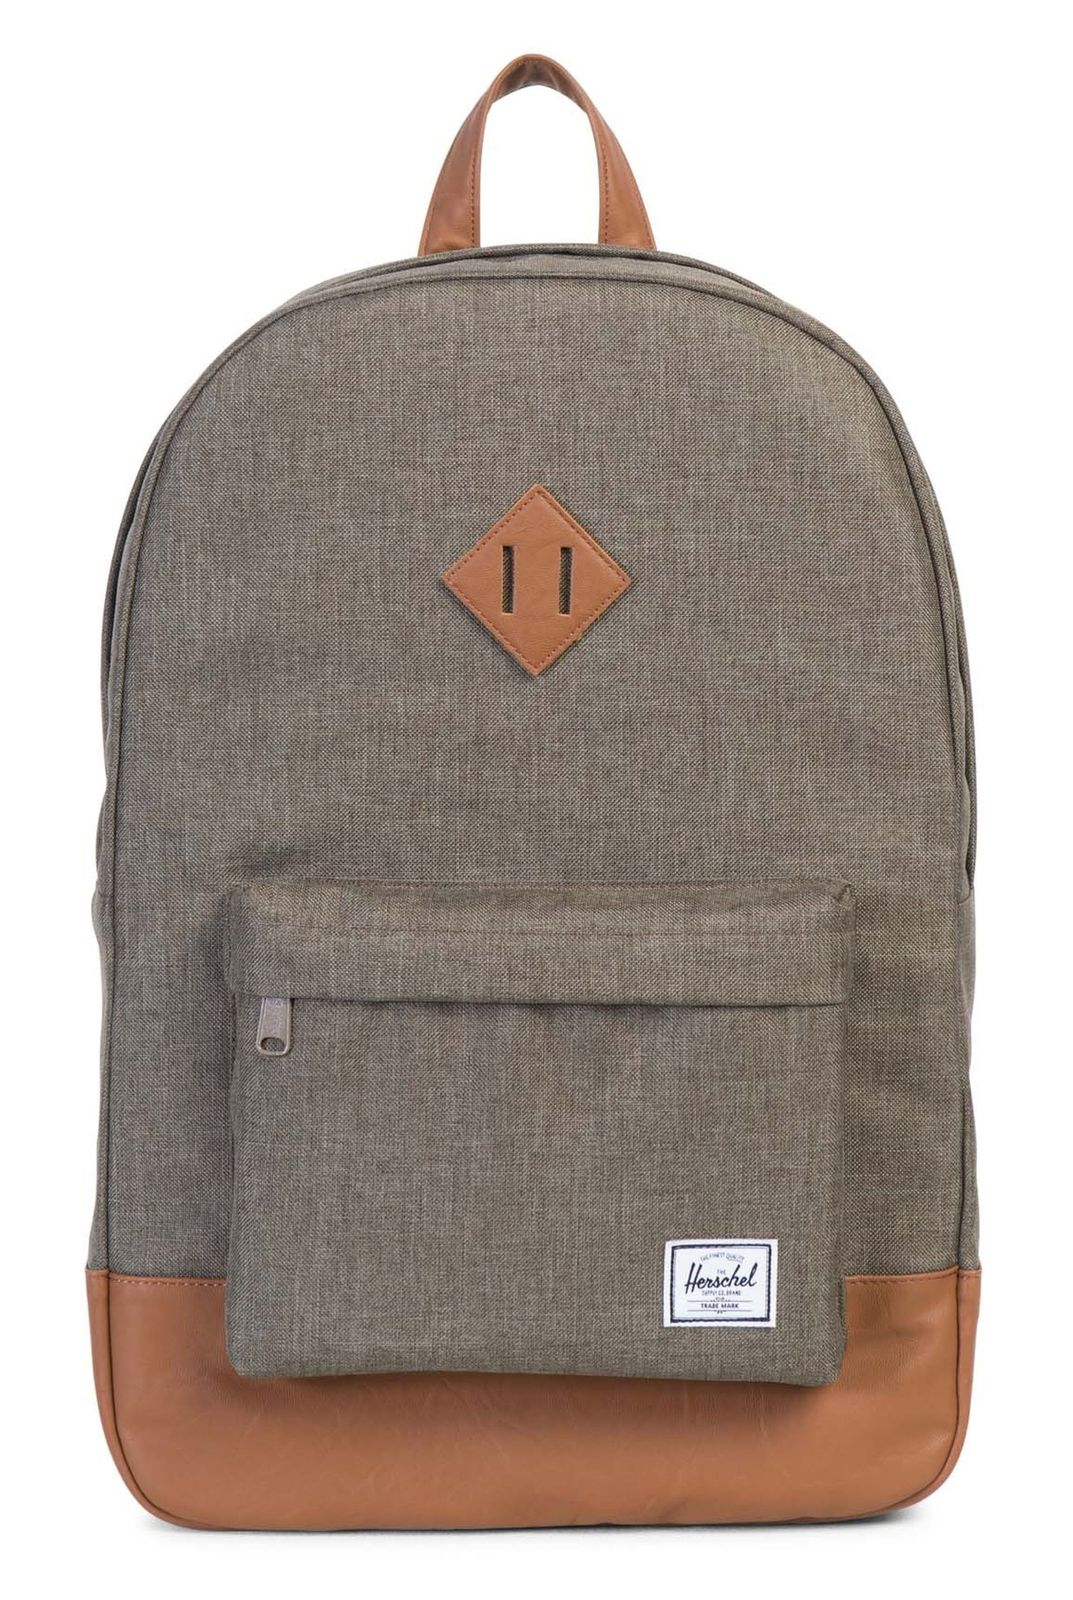 37c0eb1ec2ffd Herschel Heritage Backpack Canteen Crosshatch   Tan Synthetic Leather